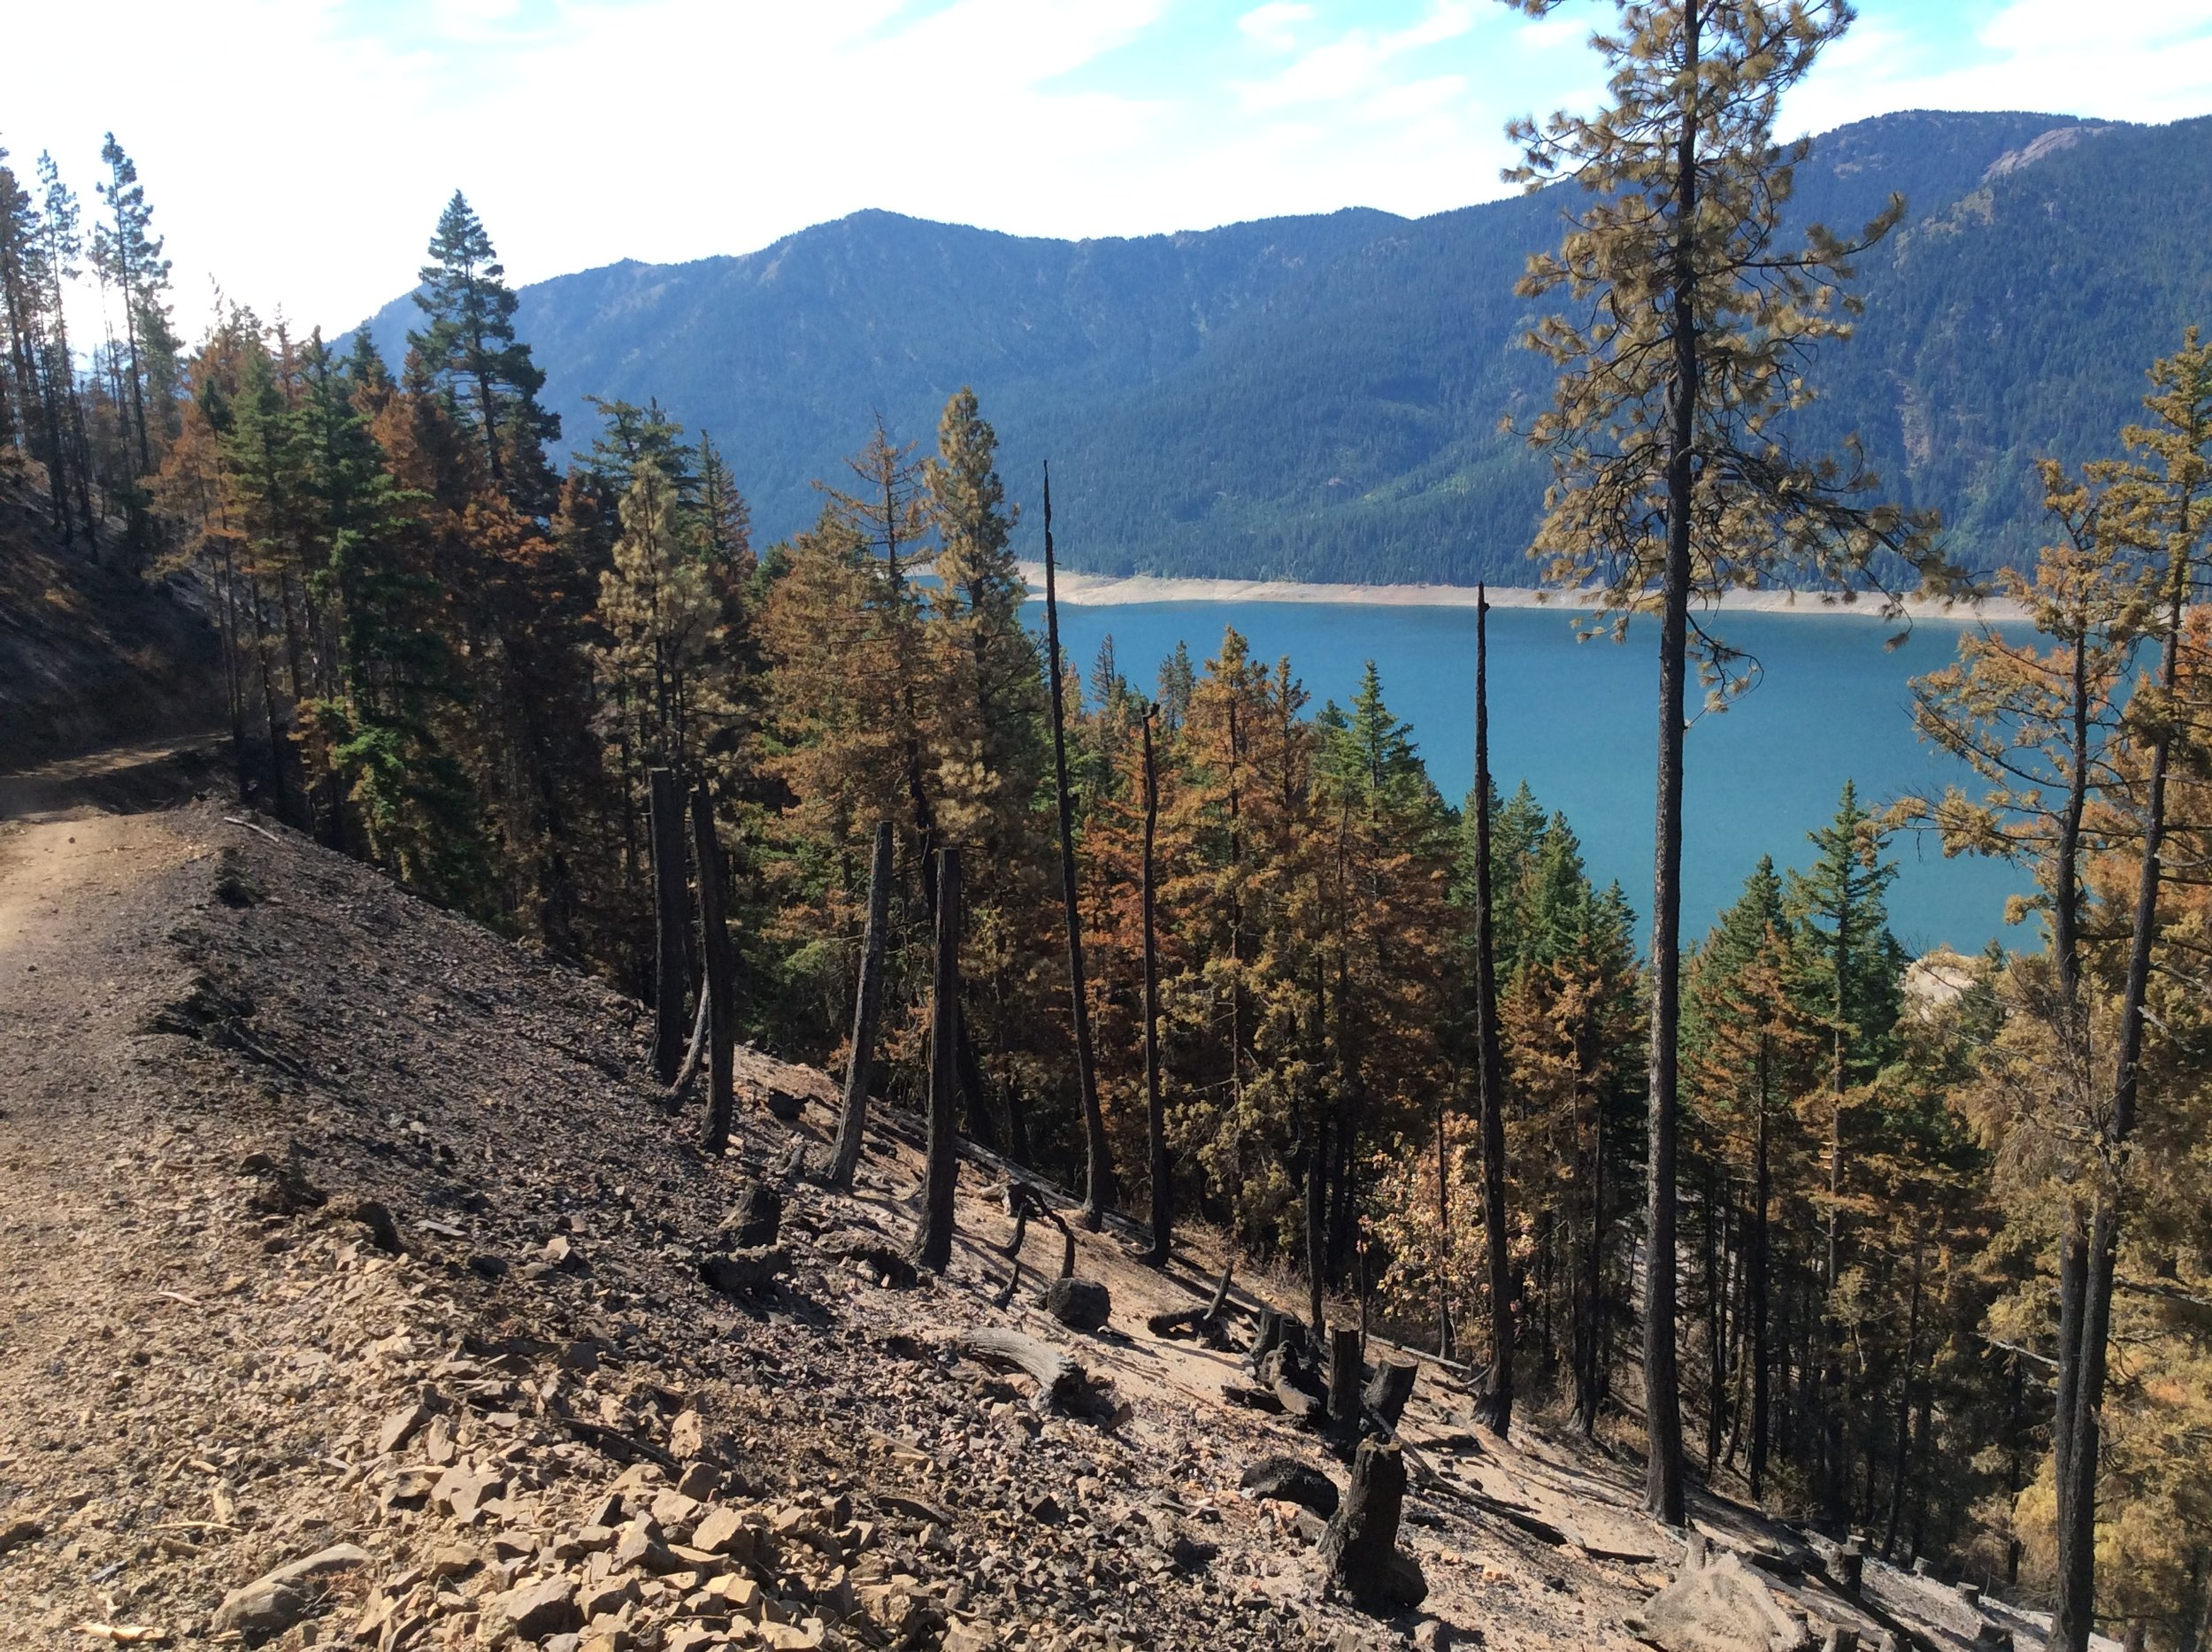 """This is the """"Morgan Unit,"""" which was thinned winter 2016-17, looking toward leave strip below the road. Moderate to high severity burn. Photo © Brian Mize/TNC"""